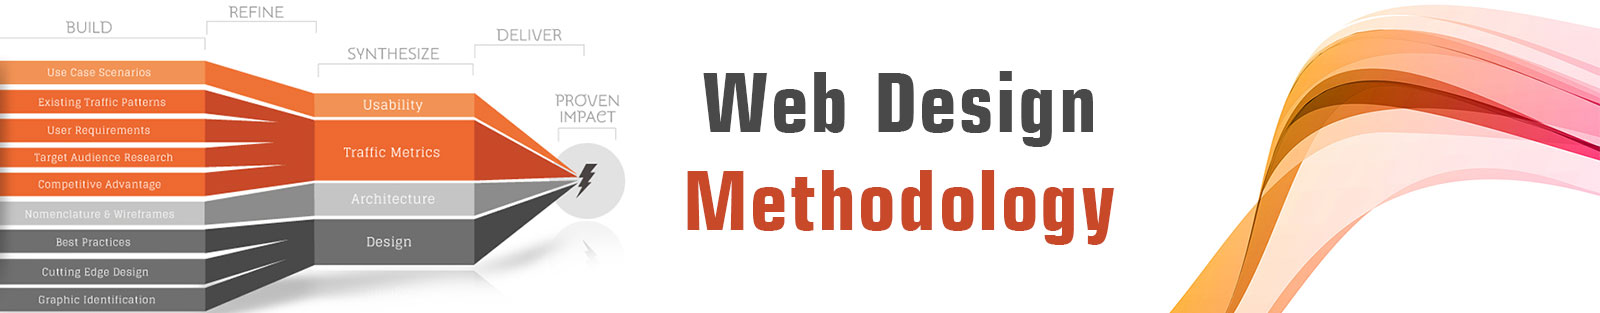 Web Design Methodology